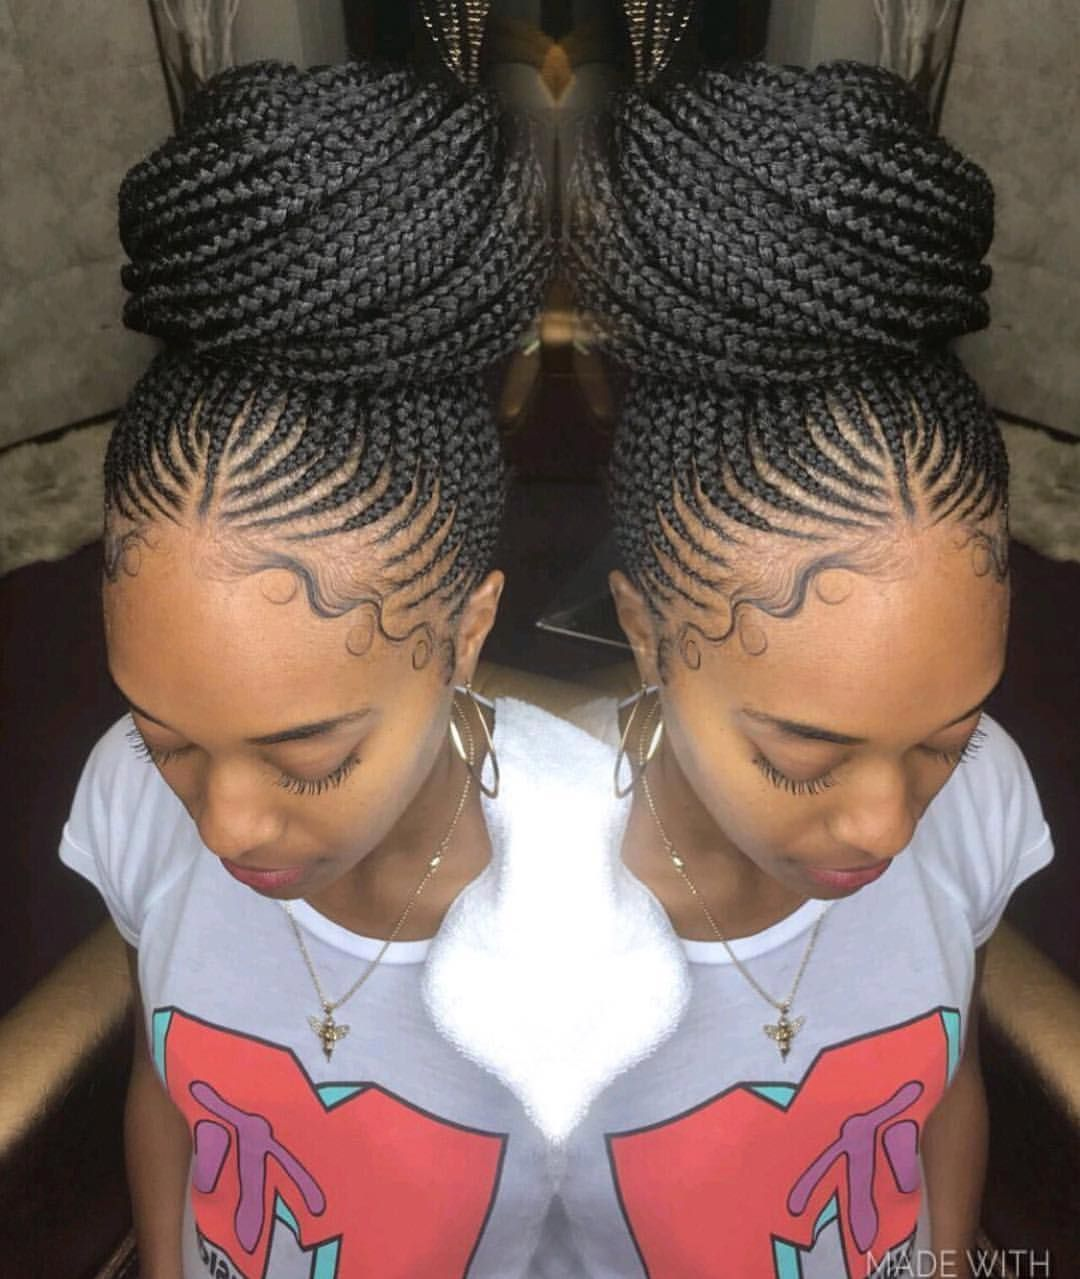 Braided Hairstyles For 9 Year Olds Braided Hairstyles In Kenya 2019 Braided Updos African America In 2020 Braided Hairstyles Natural Hair Styles New Long Hairstyles